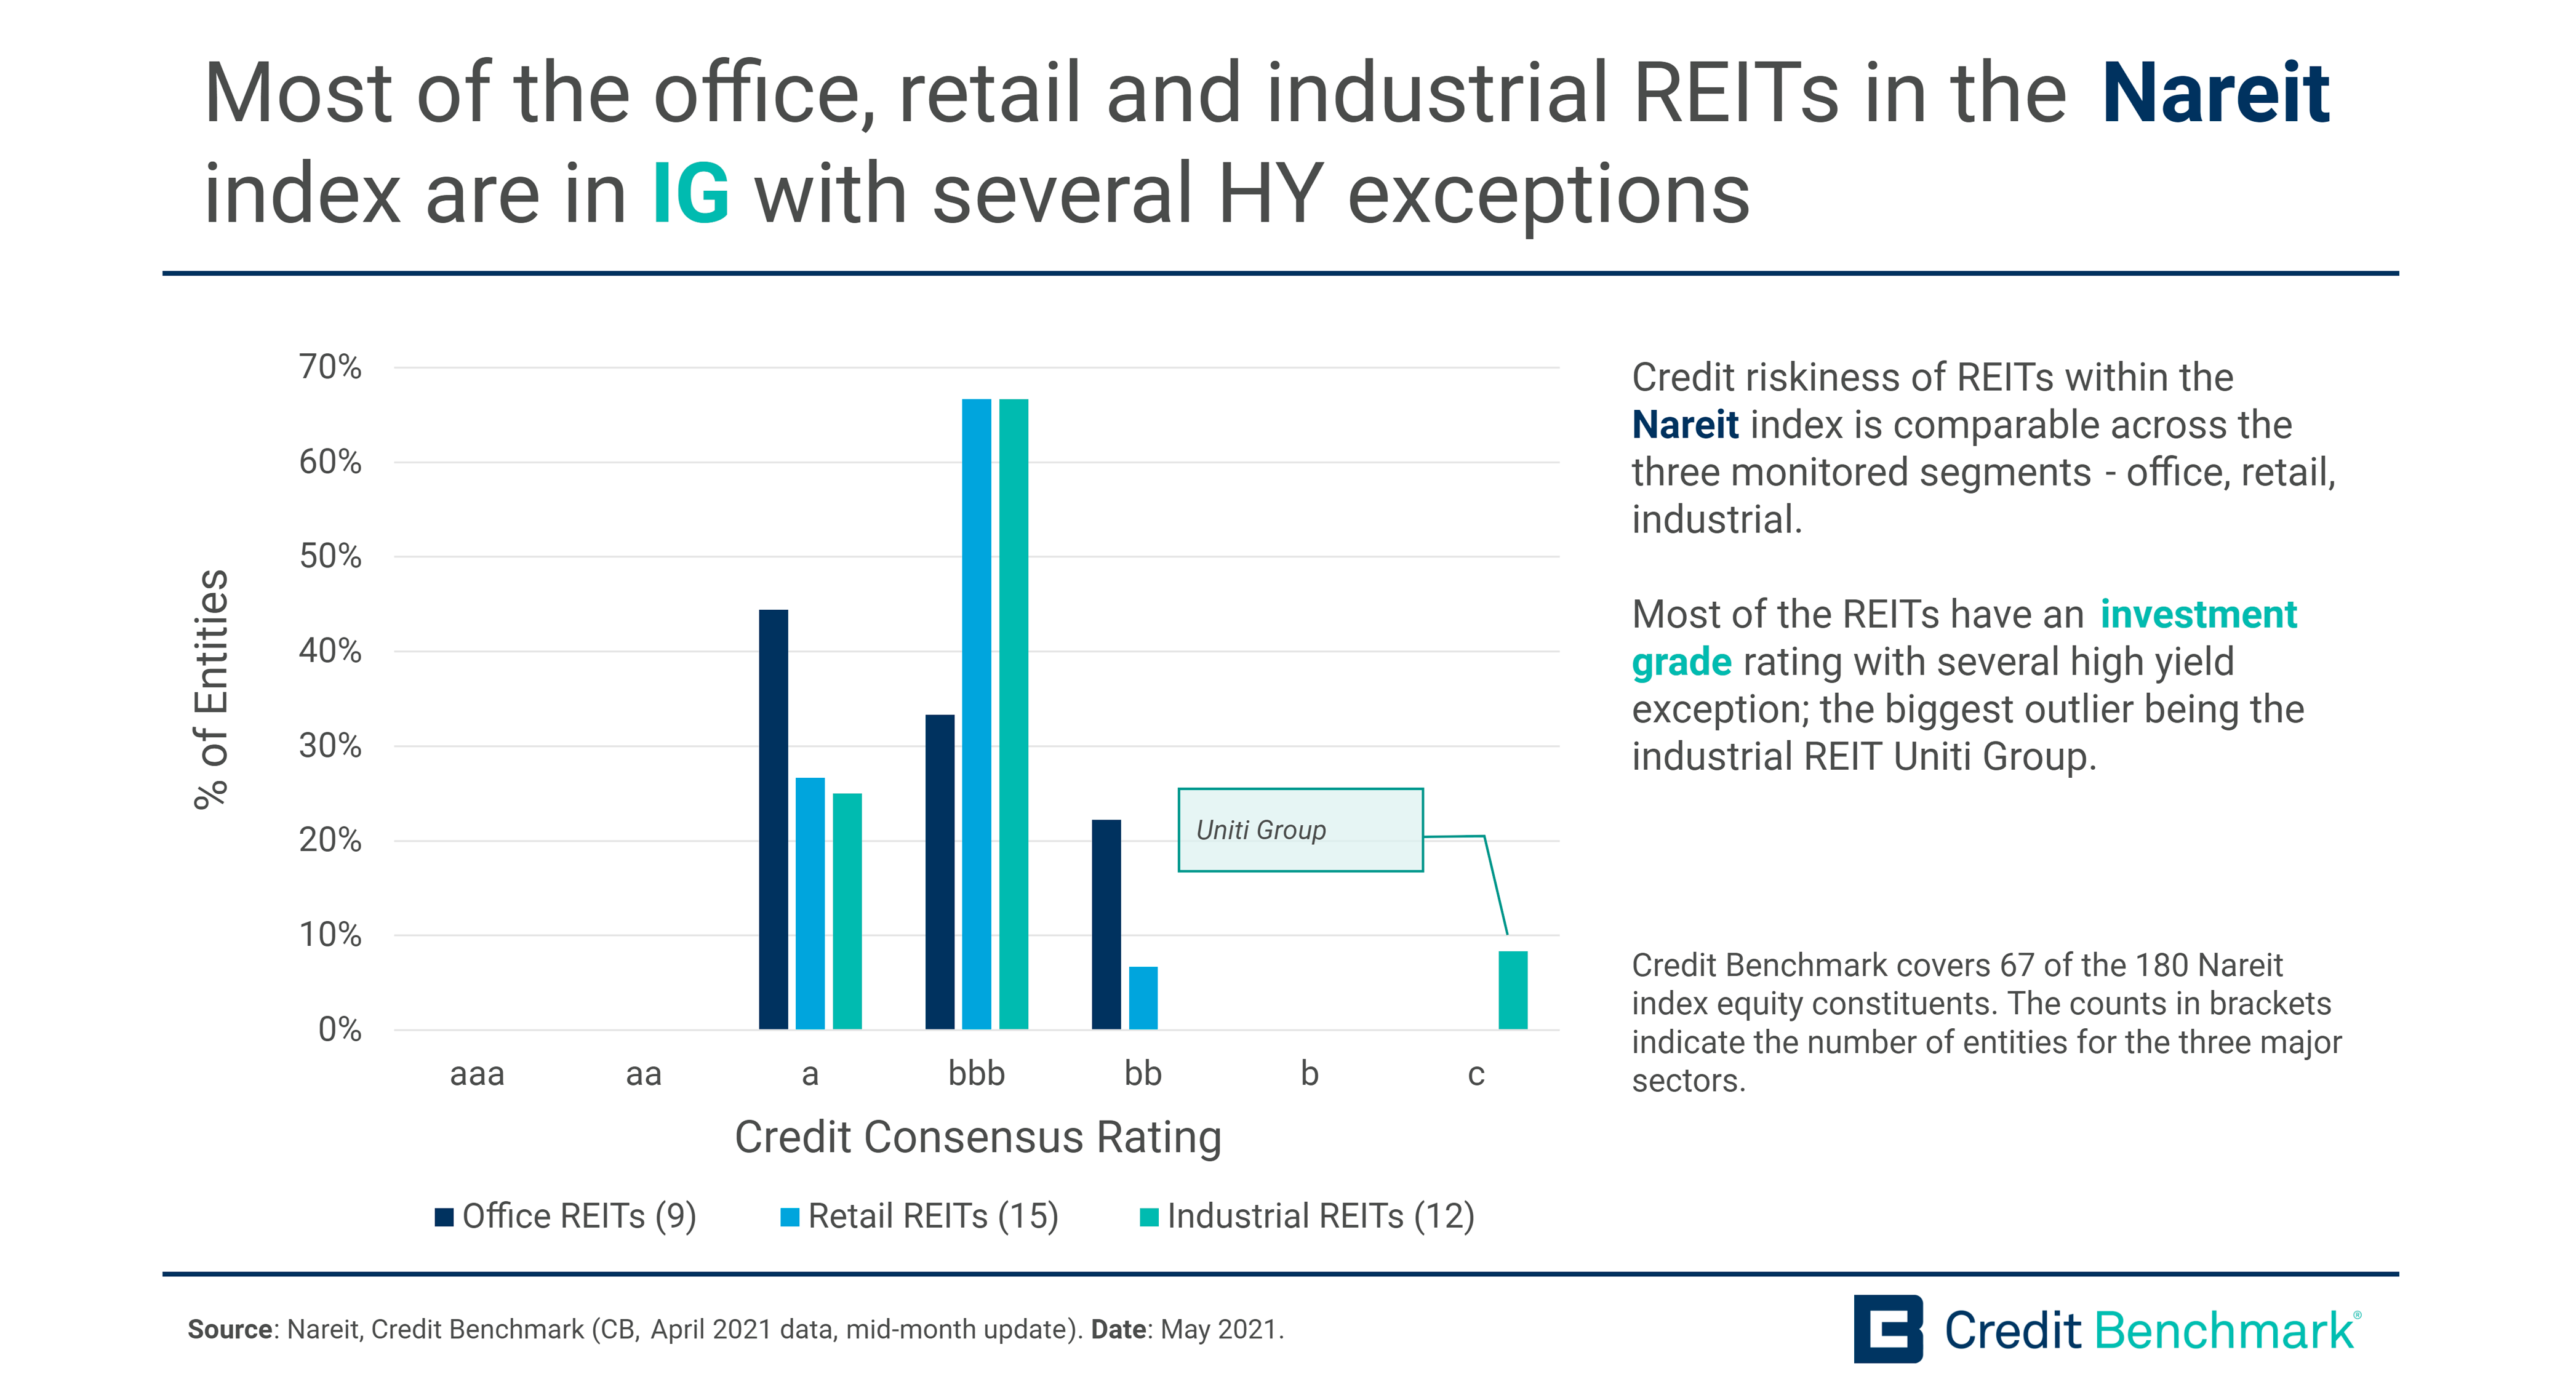 Most of the office, retail and industrial REITs in the Nareit index are in IG with several HY exceptions